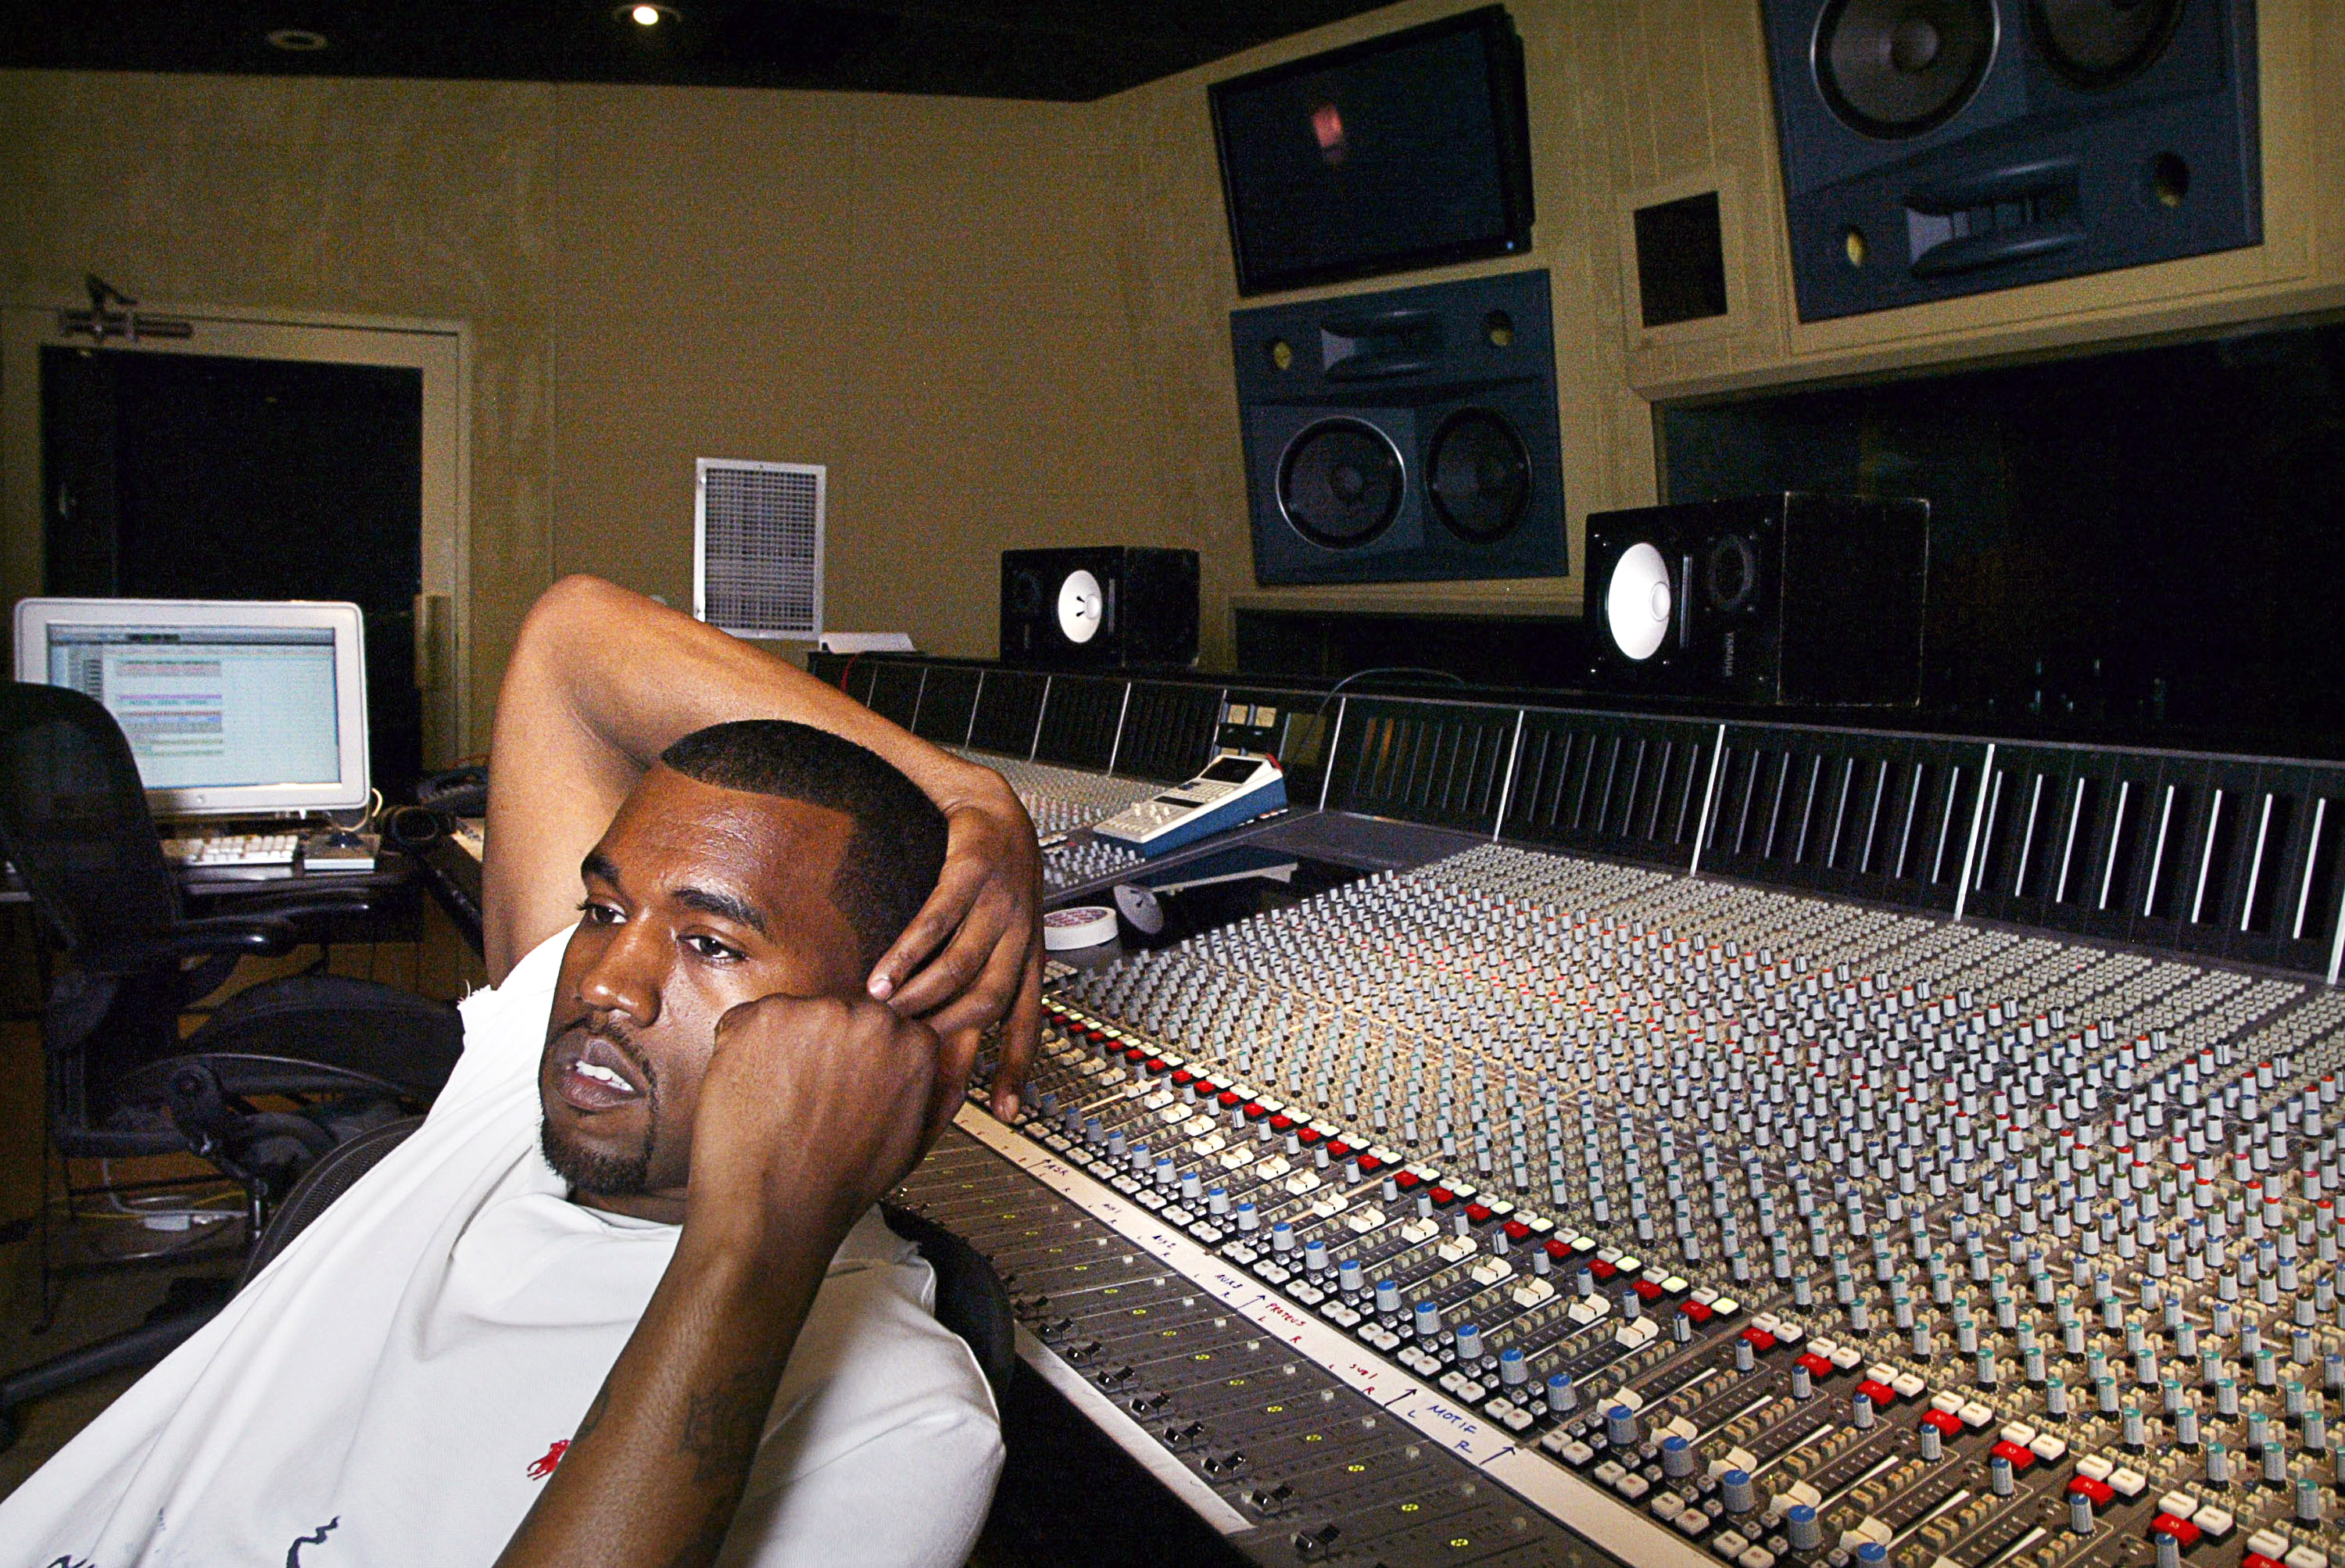 Kanye West: 20 Songs You Didn't Know He Produced - Rolling Stone